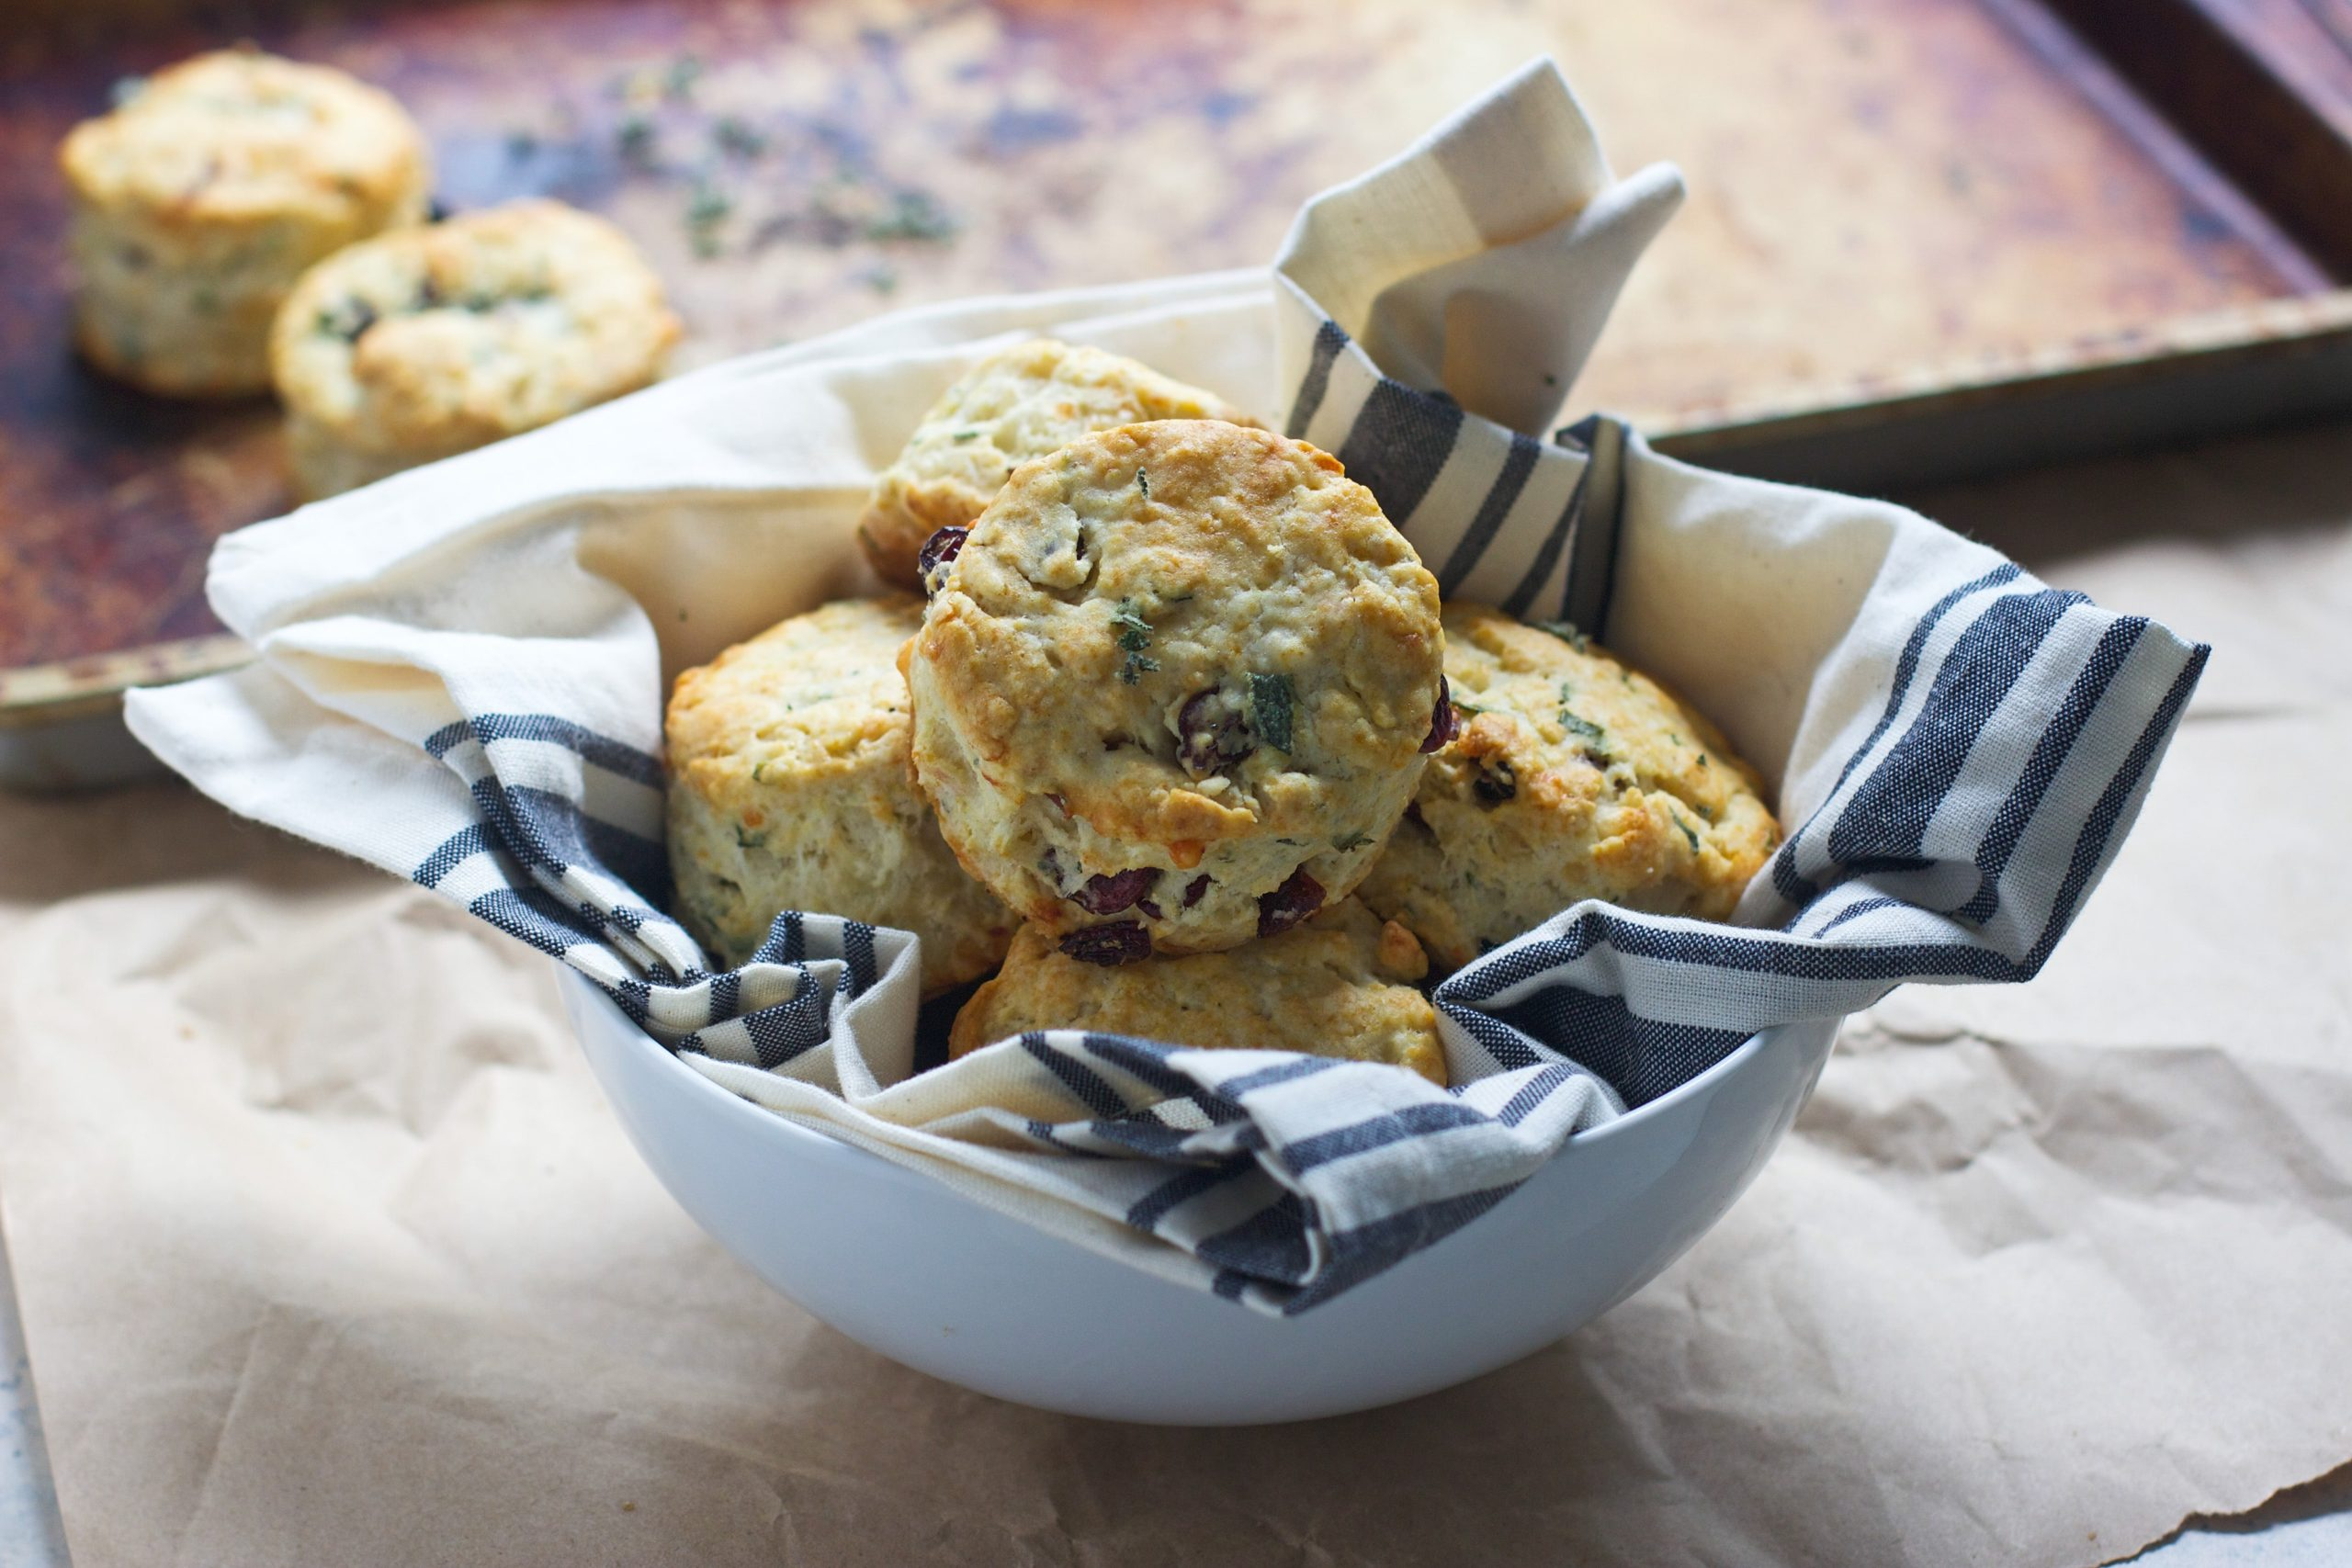 Super Easy Gruyere, Cranberrya and Sage Buttermilk Biscuits - The perfect alternative to rolls on your holiday table!